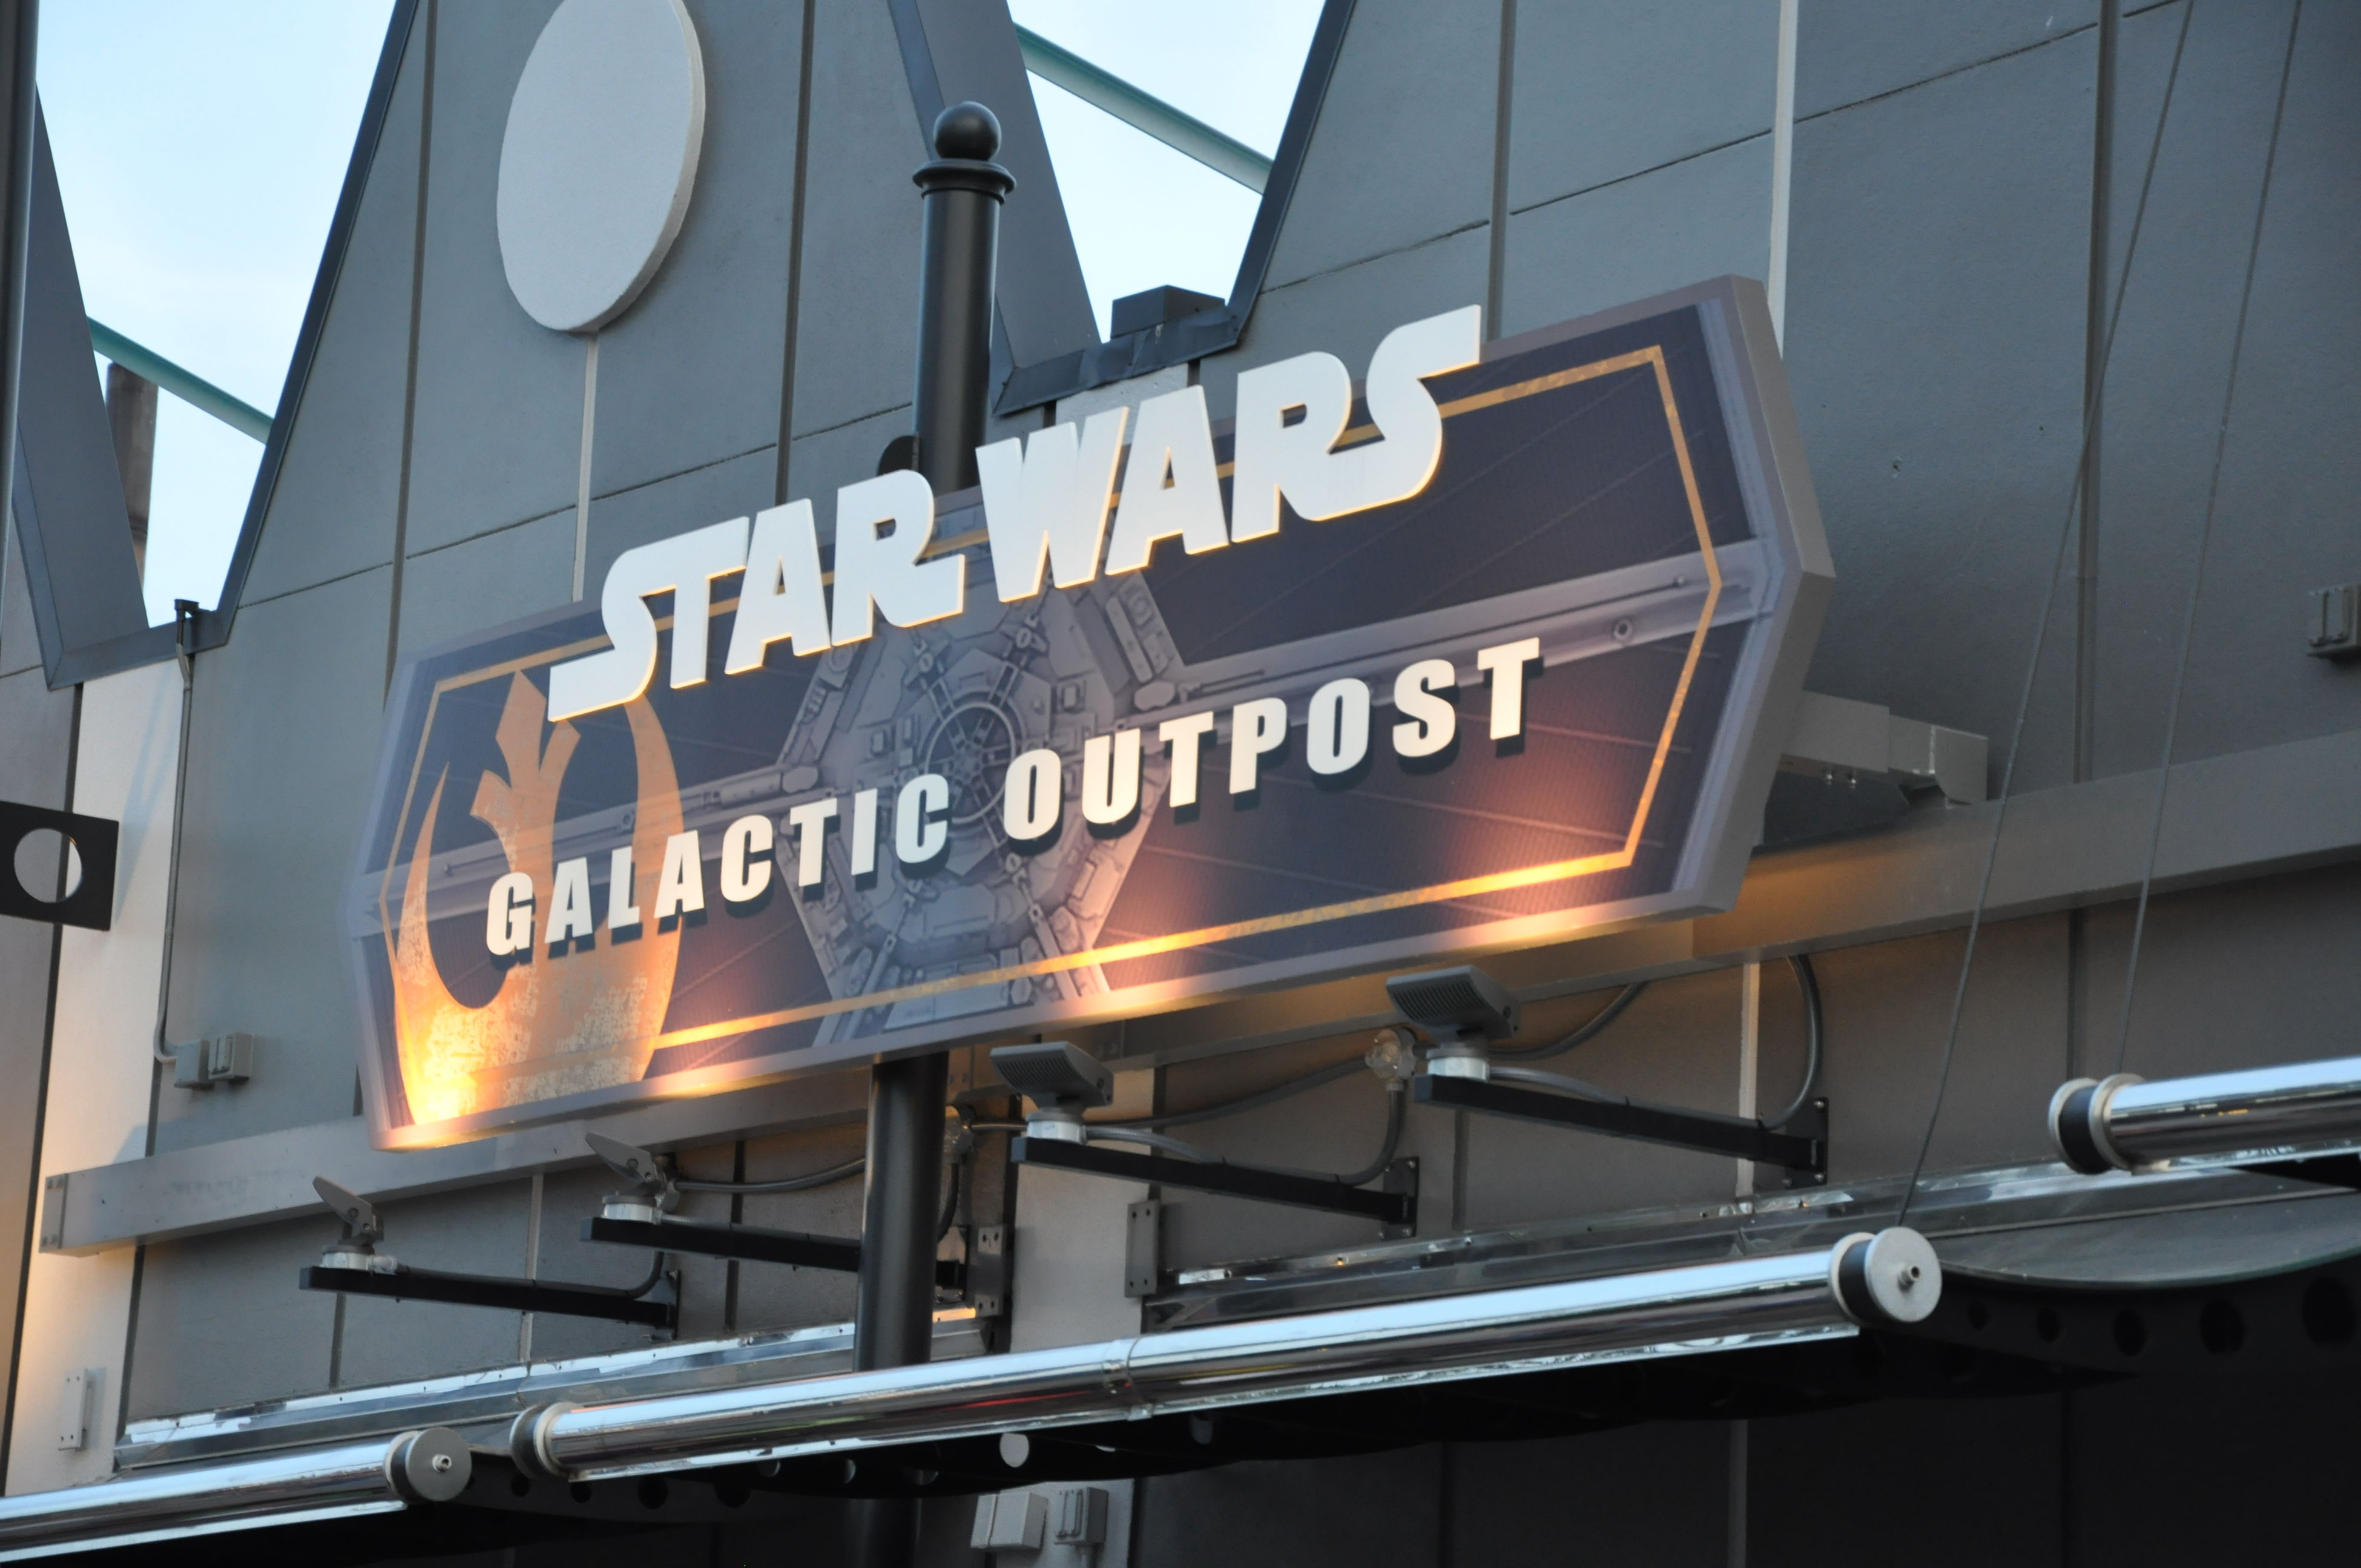 Airport Architecture Arrival Built Structure Clock Face Communication Day Discover Your City Galactic Outpost No People Outdoors Star Wars Text Transportation Travel